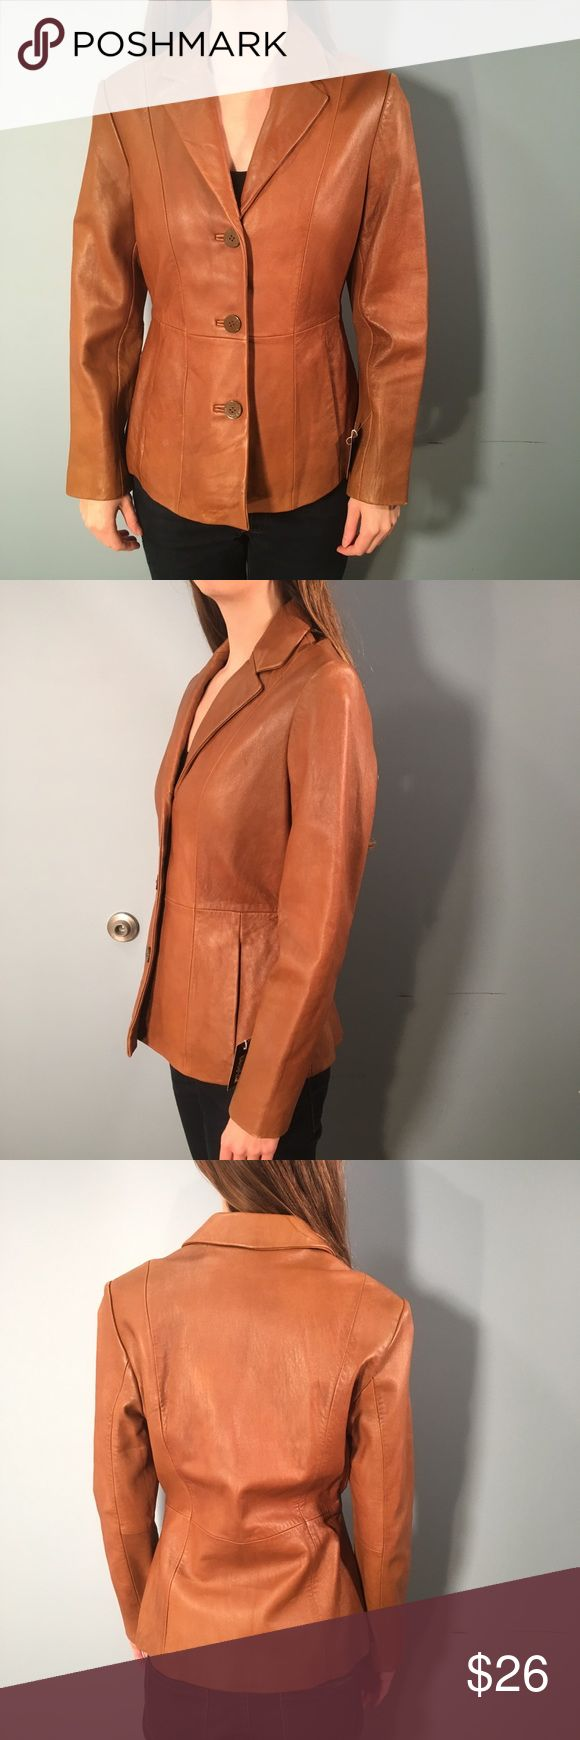 Wilsons Leather Tan Leather Jacket Size S Excellent condition!! Wilsons Leather Jackets & Coats Blazers